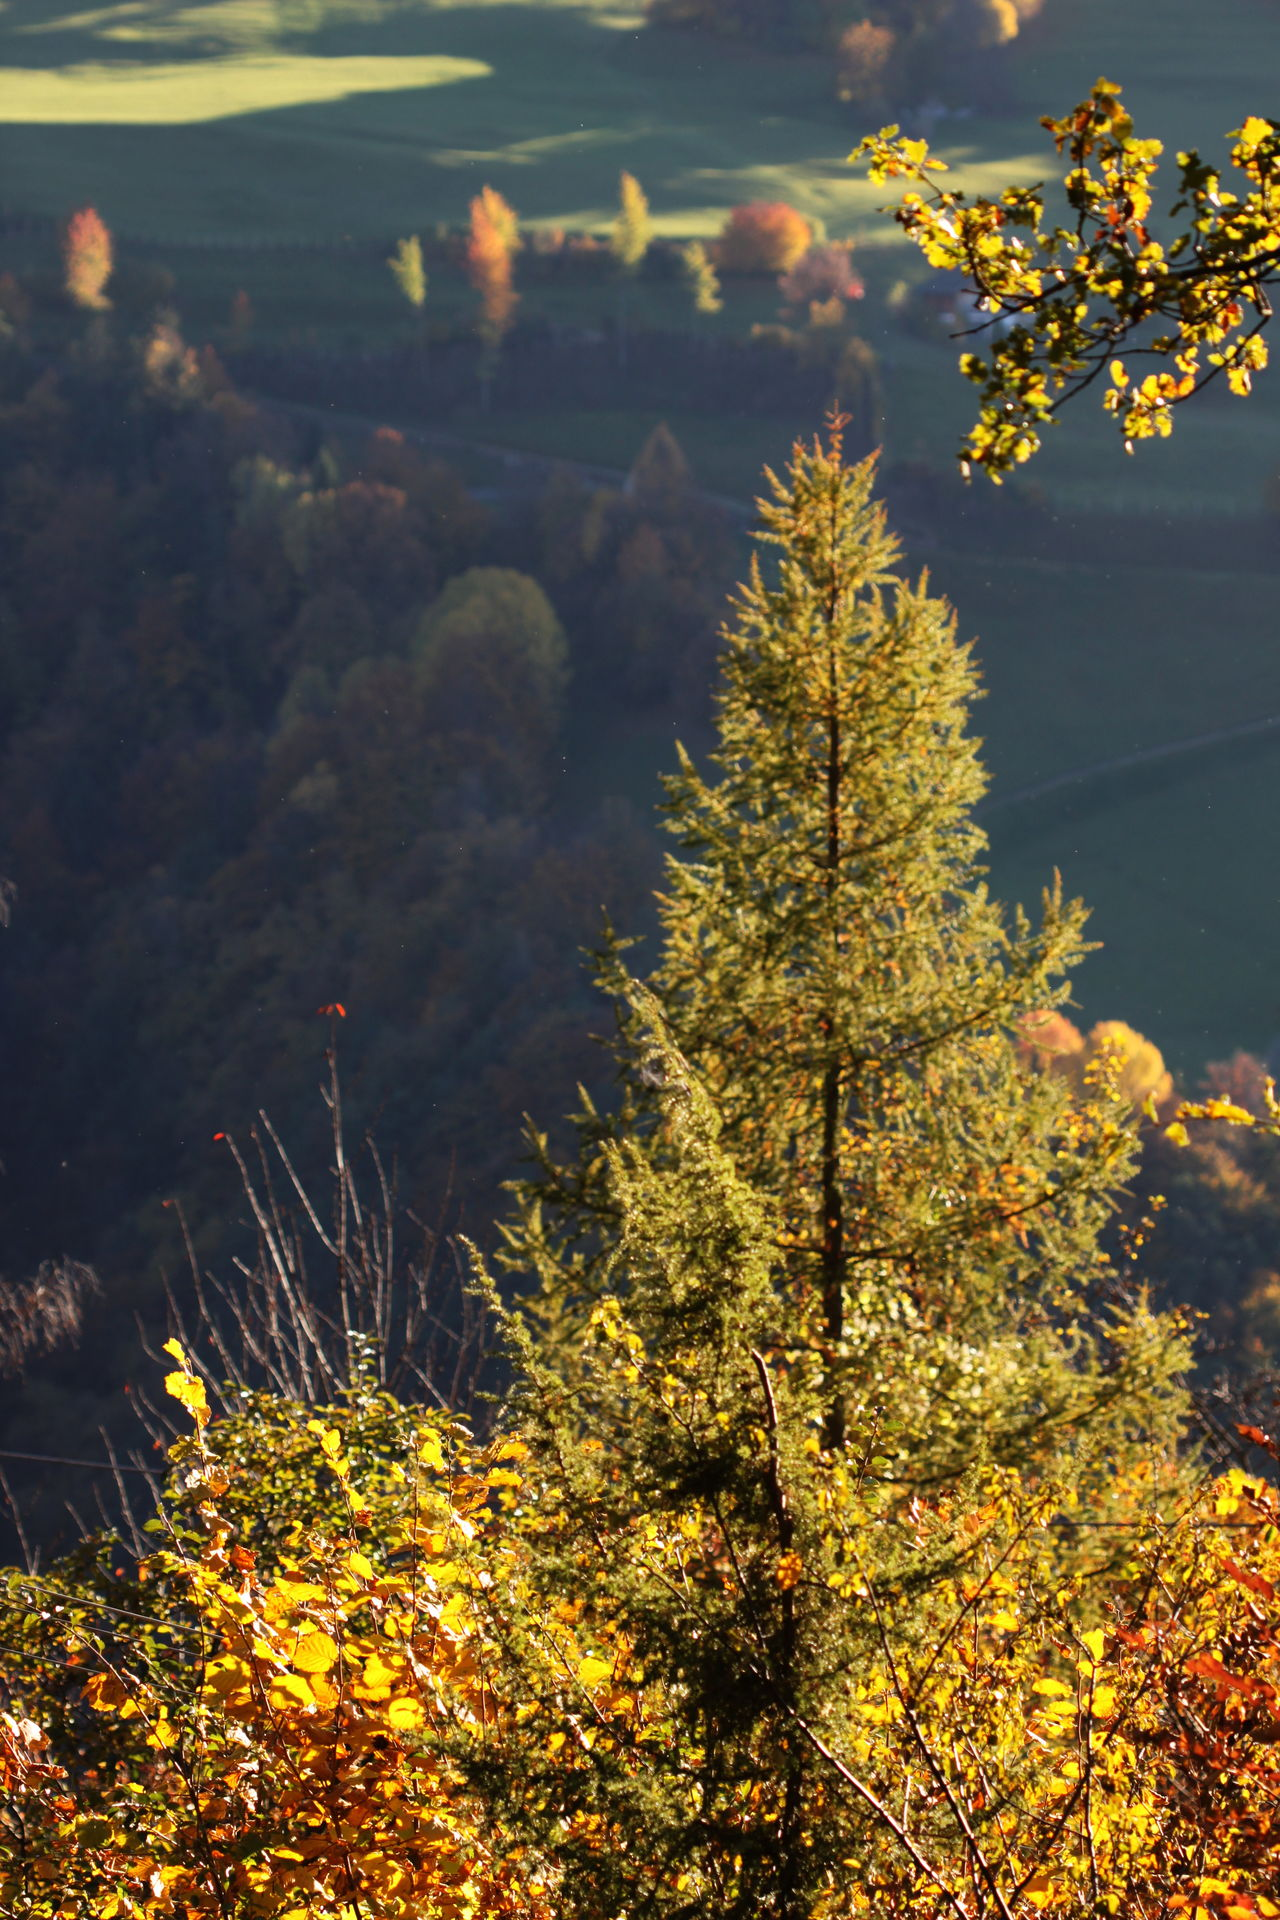 Autumn Autumn 2016 Beauty In Nature Fiè Allo Sciliar Forest Illuminated Italy Nature No People Outdoors Sunset Südtirol Trees And Bushes